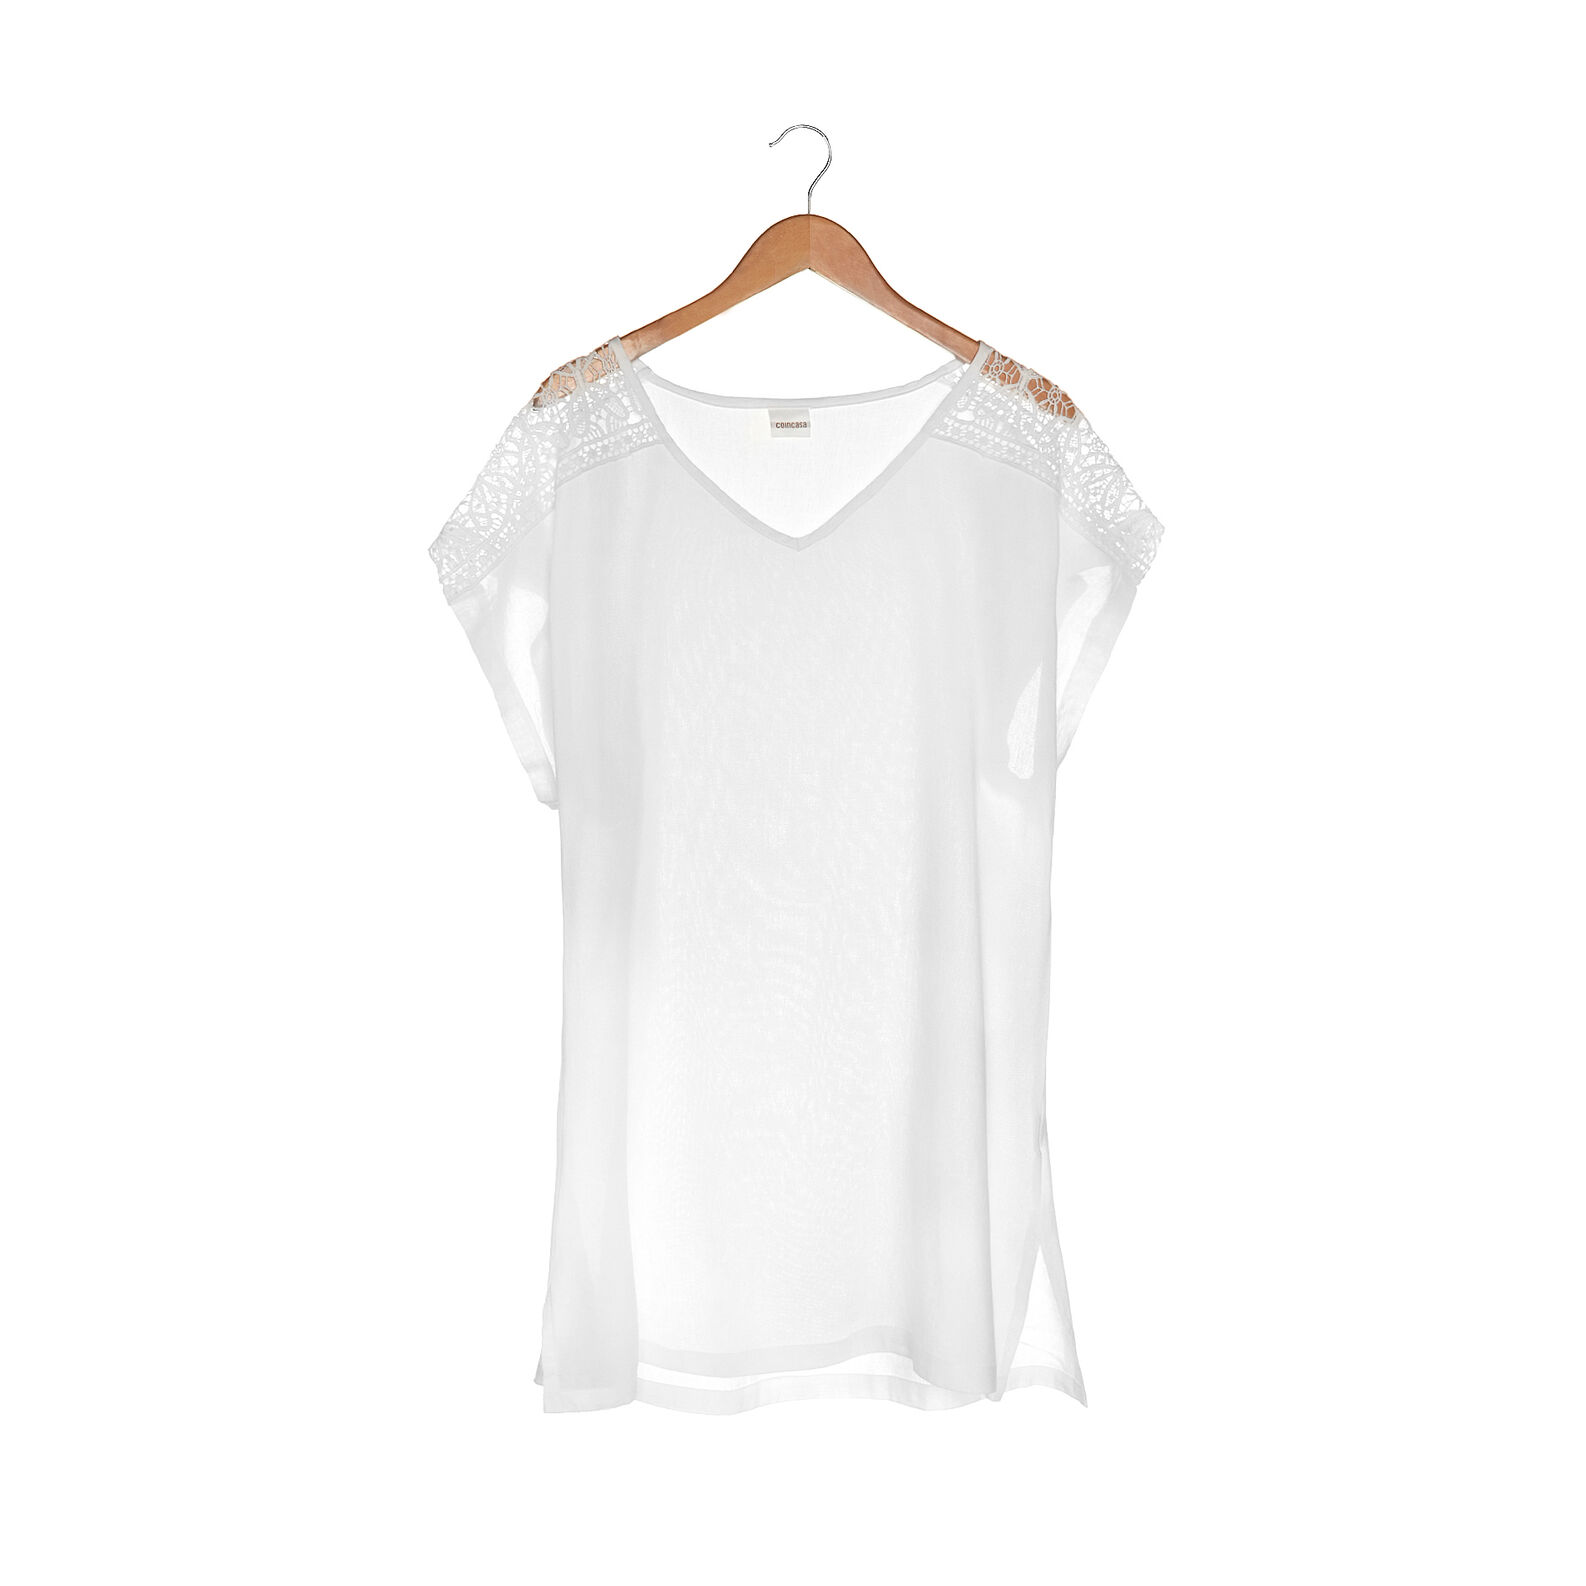 T-shirt with embroidered details on the shoulders.